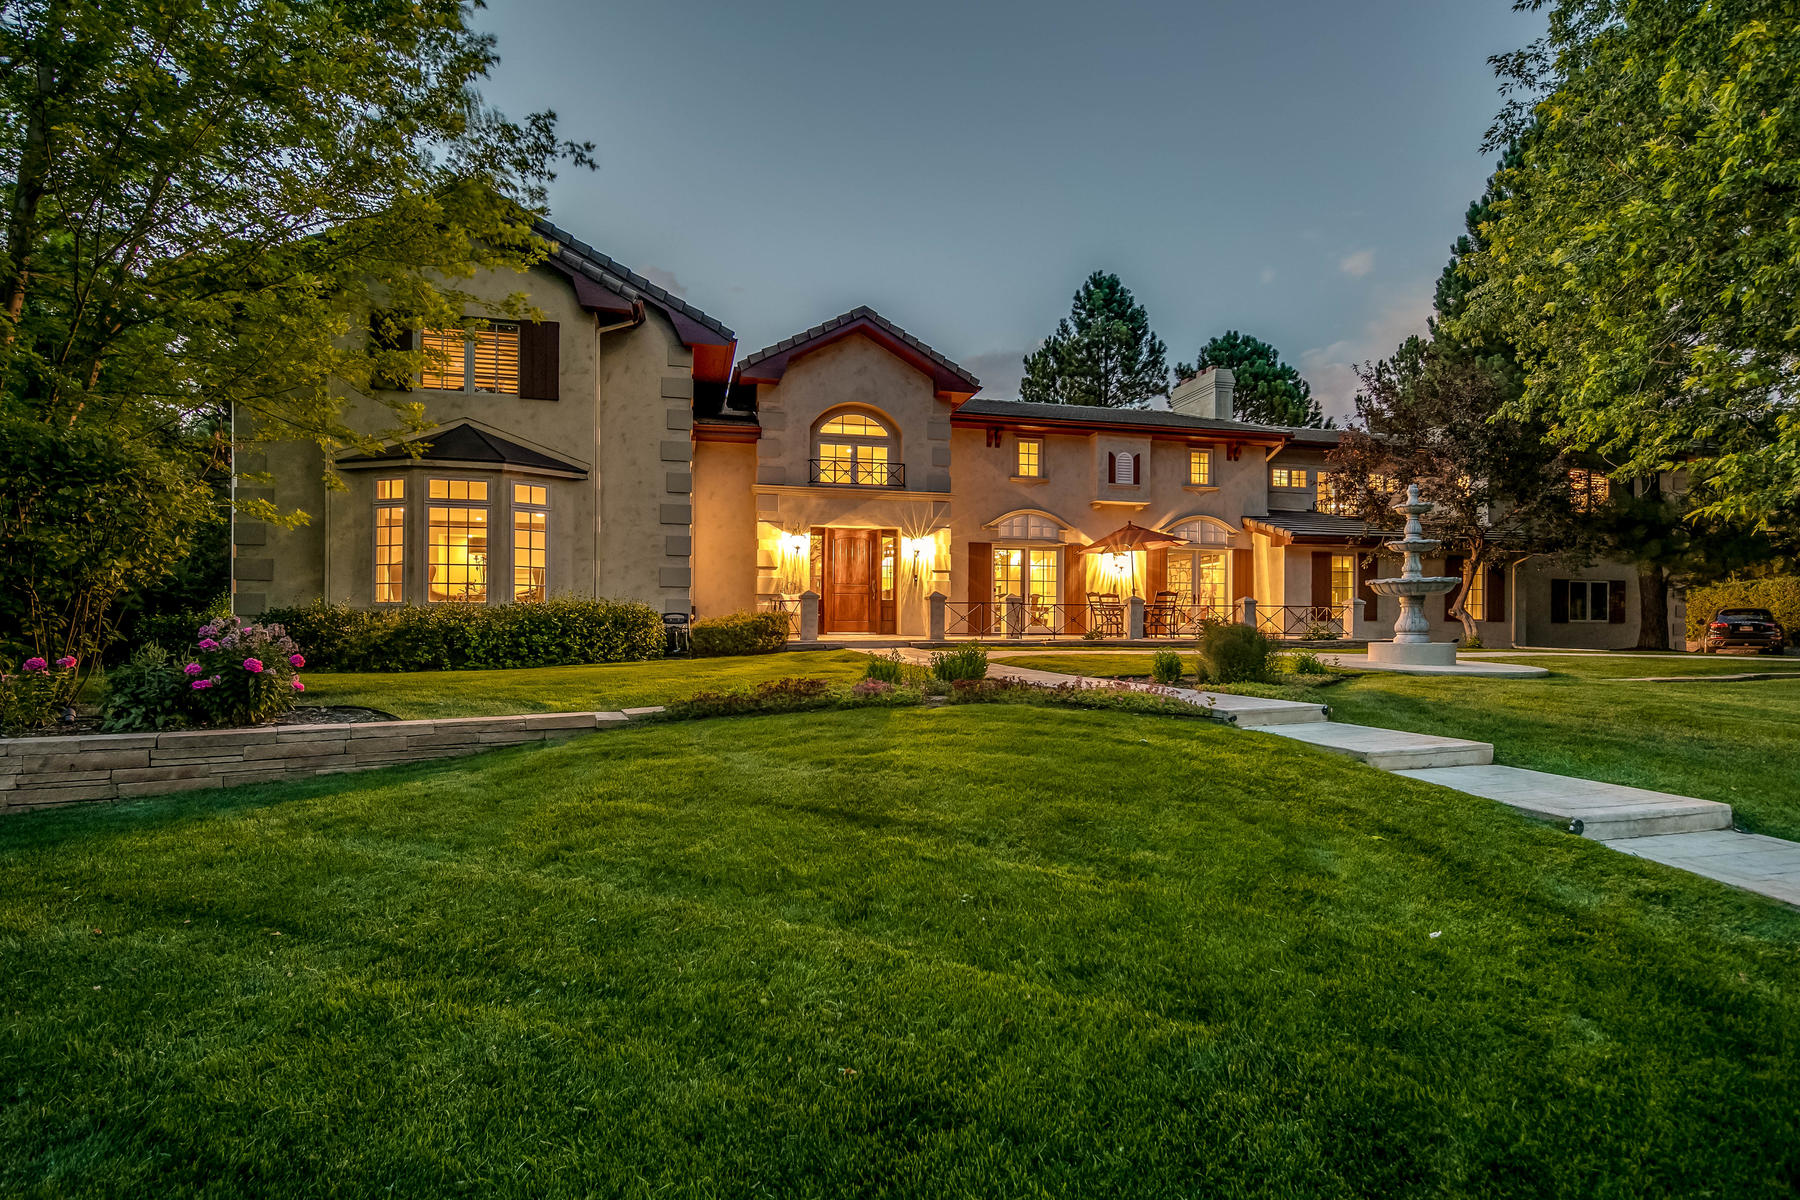 Single Family Homes for Active at 1999 Green Oaks Drive, Greenwood Village, Co, 80121 1999 Green Oaks Drive Greenwood Village, Colorado 80121 United States